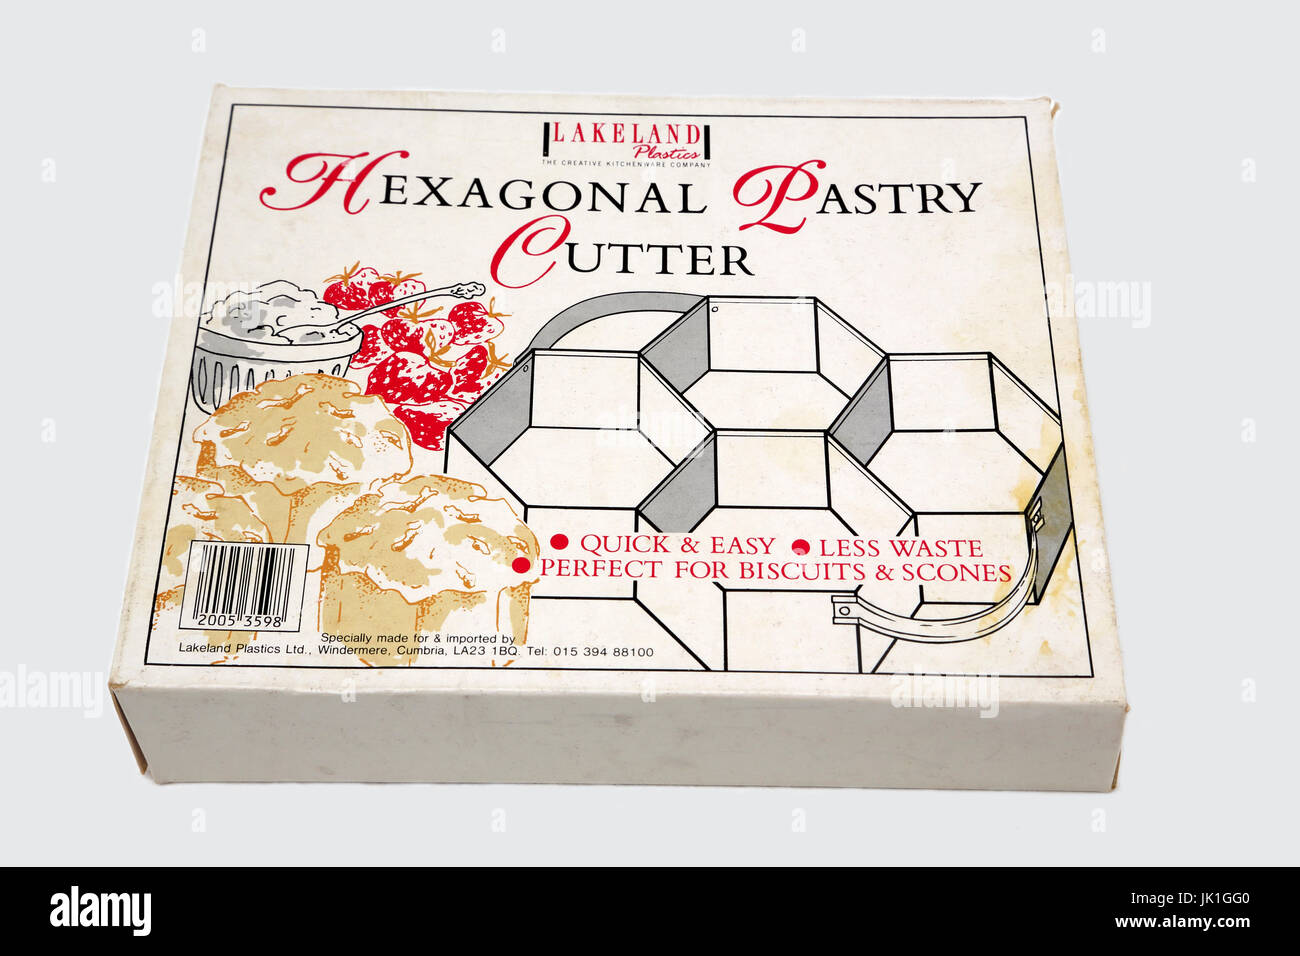 Hexagonal Pastry Cutter - Stock Image